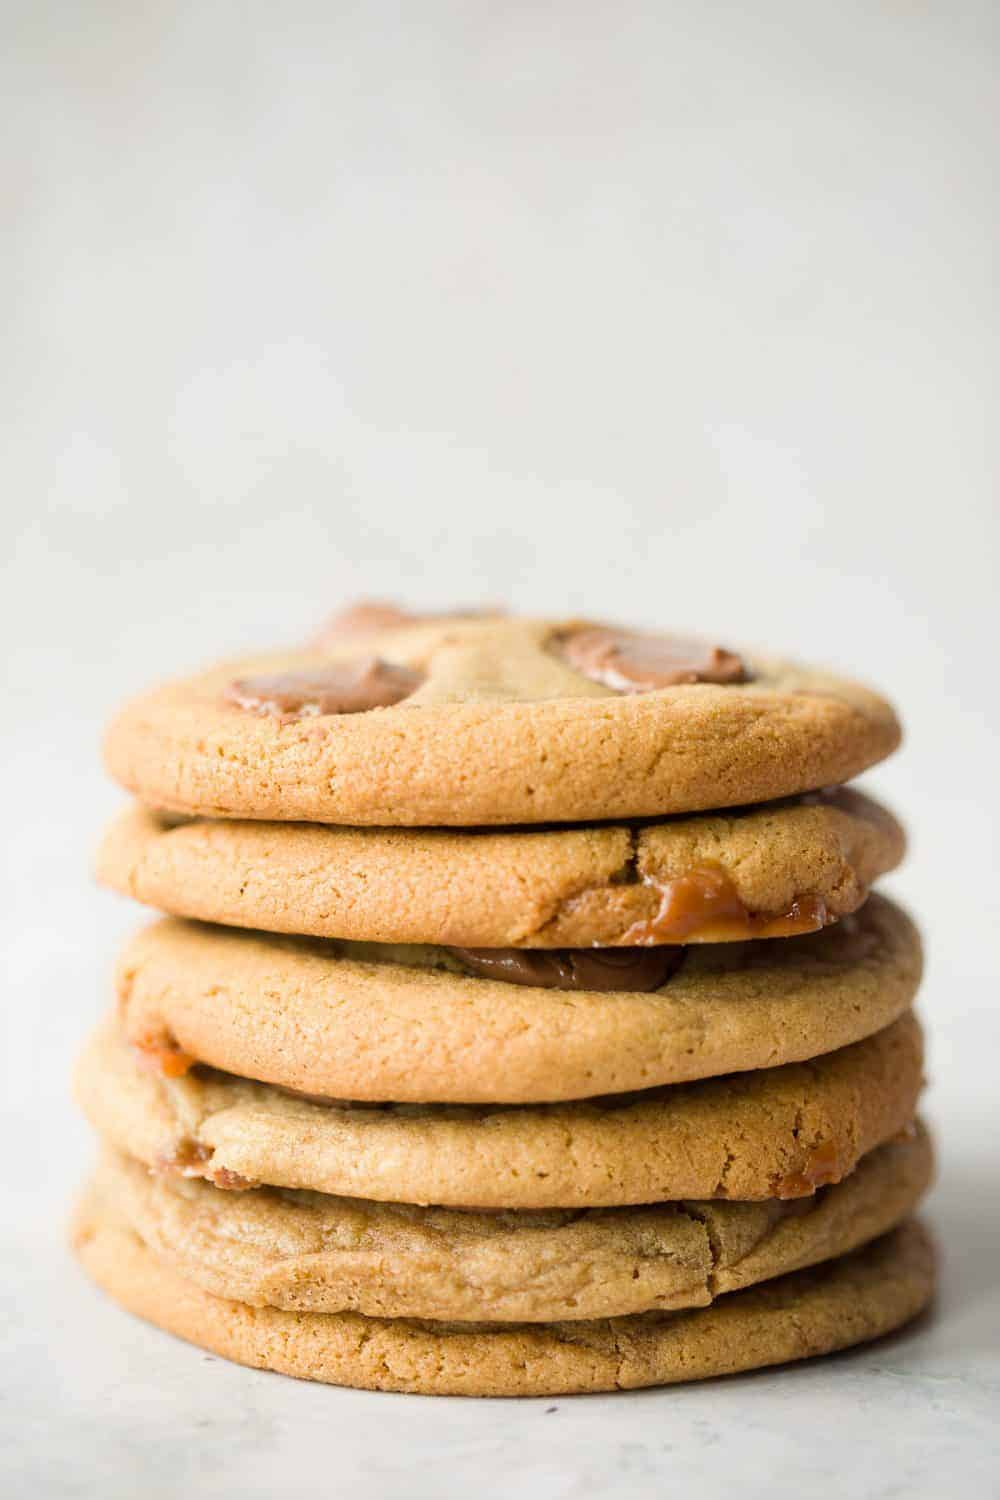 A stack of 6 large cookies.